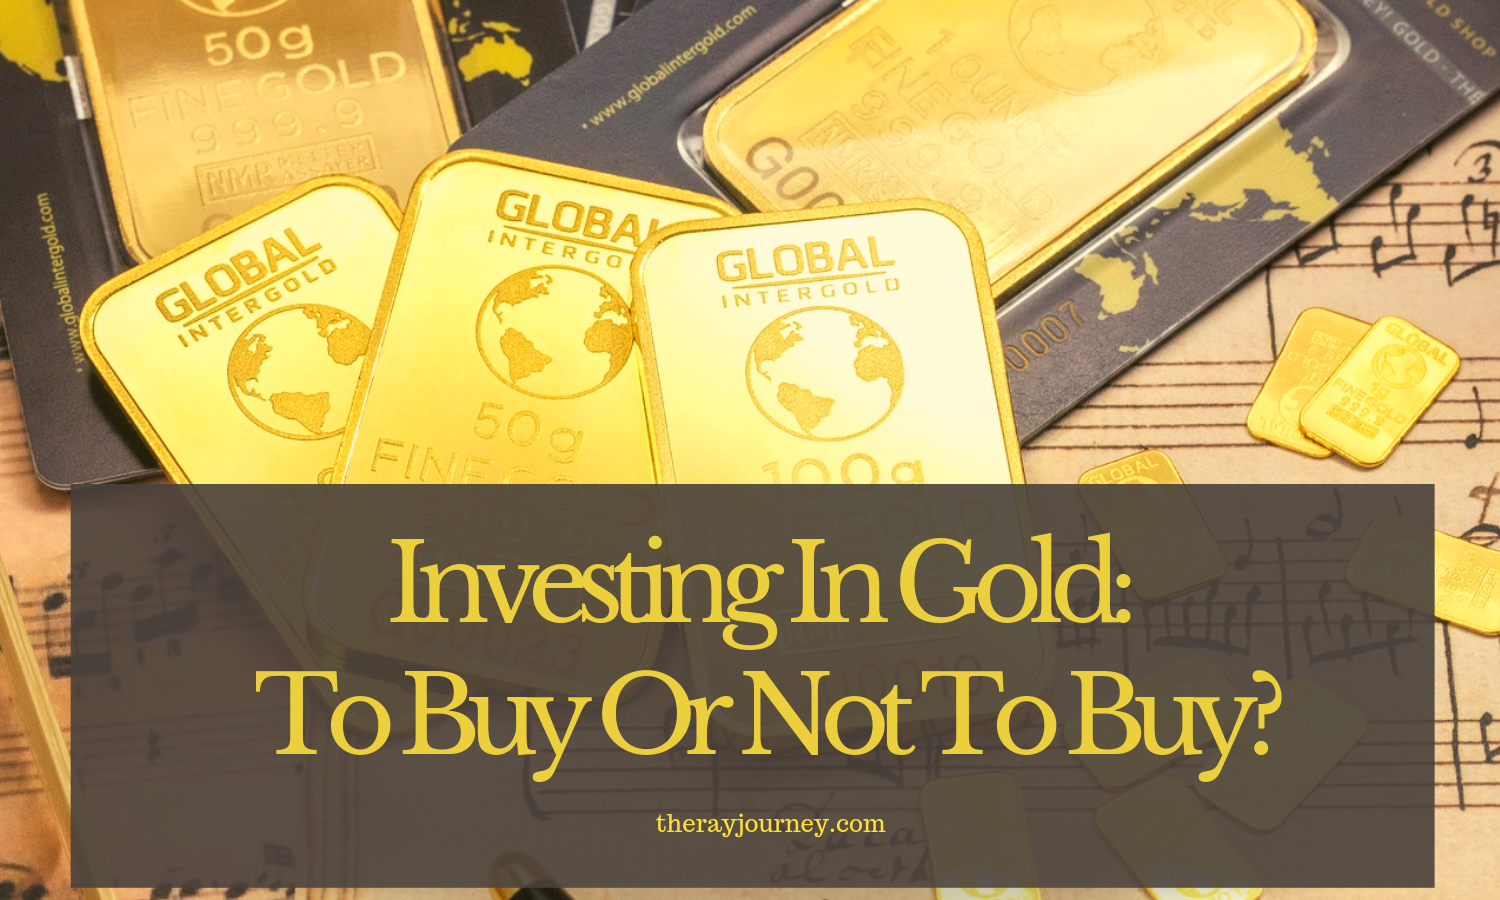 Investing In Gold In 2019: To Buy Or Not To Buy?